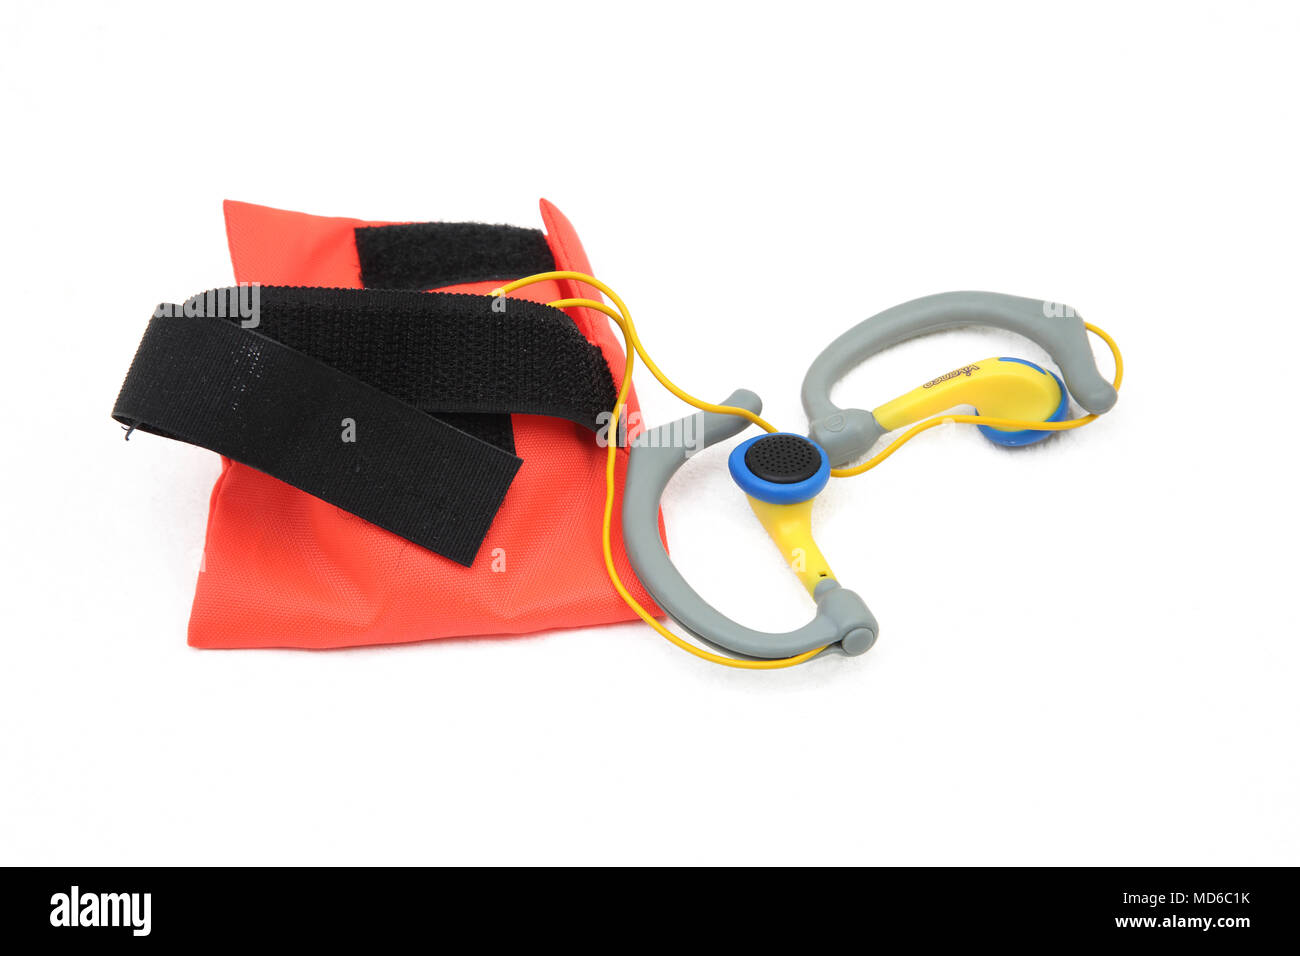 Vivanco Ear Phones And Pouch - Stock Image